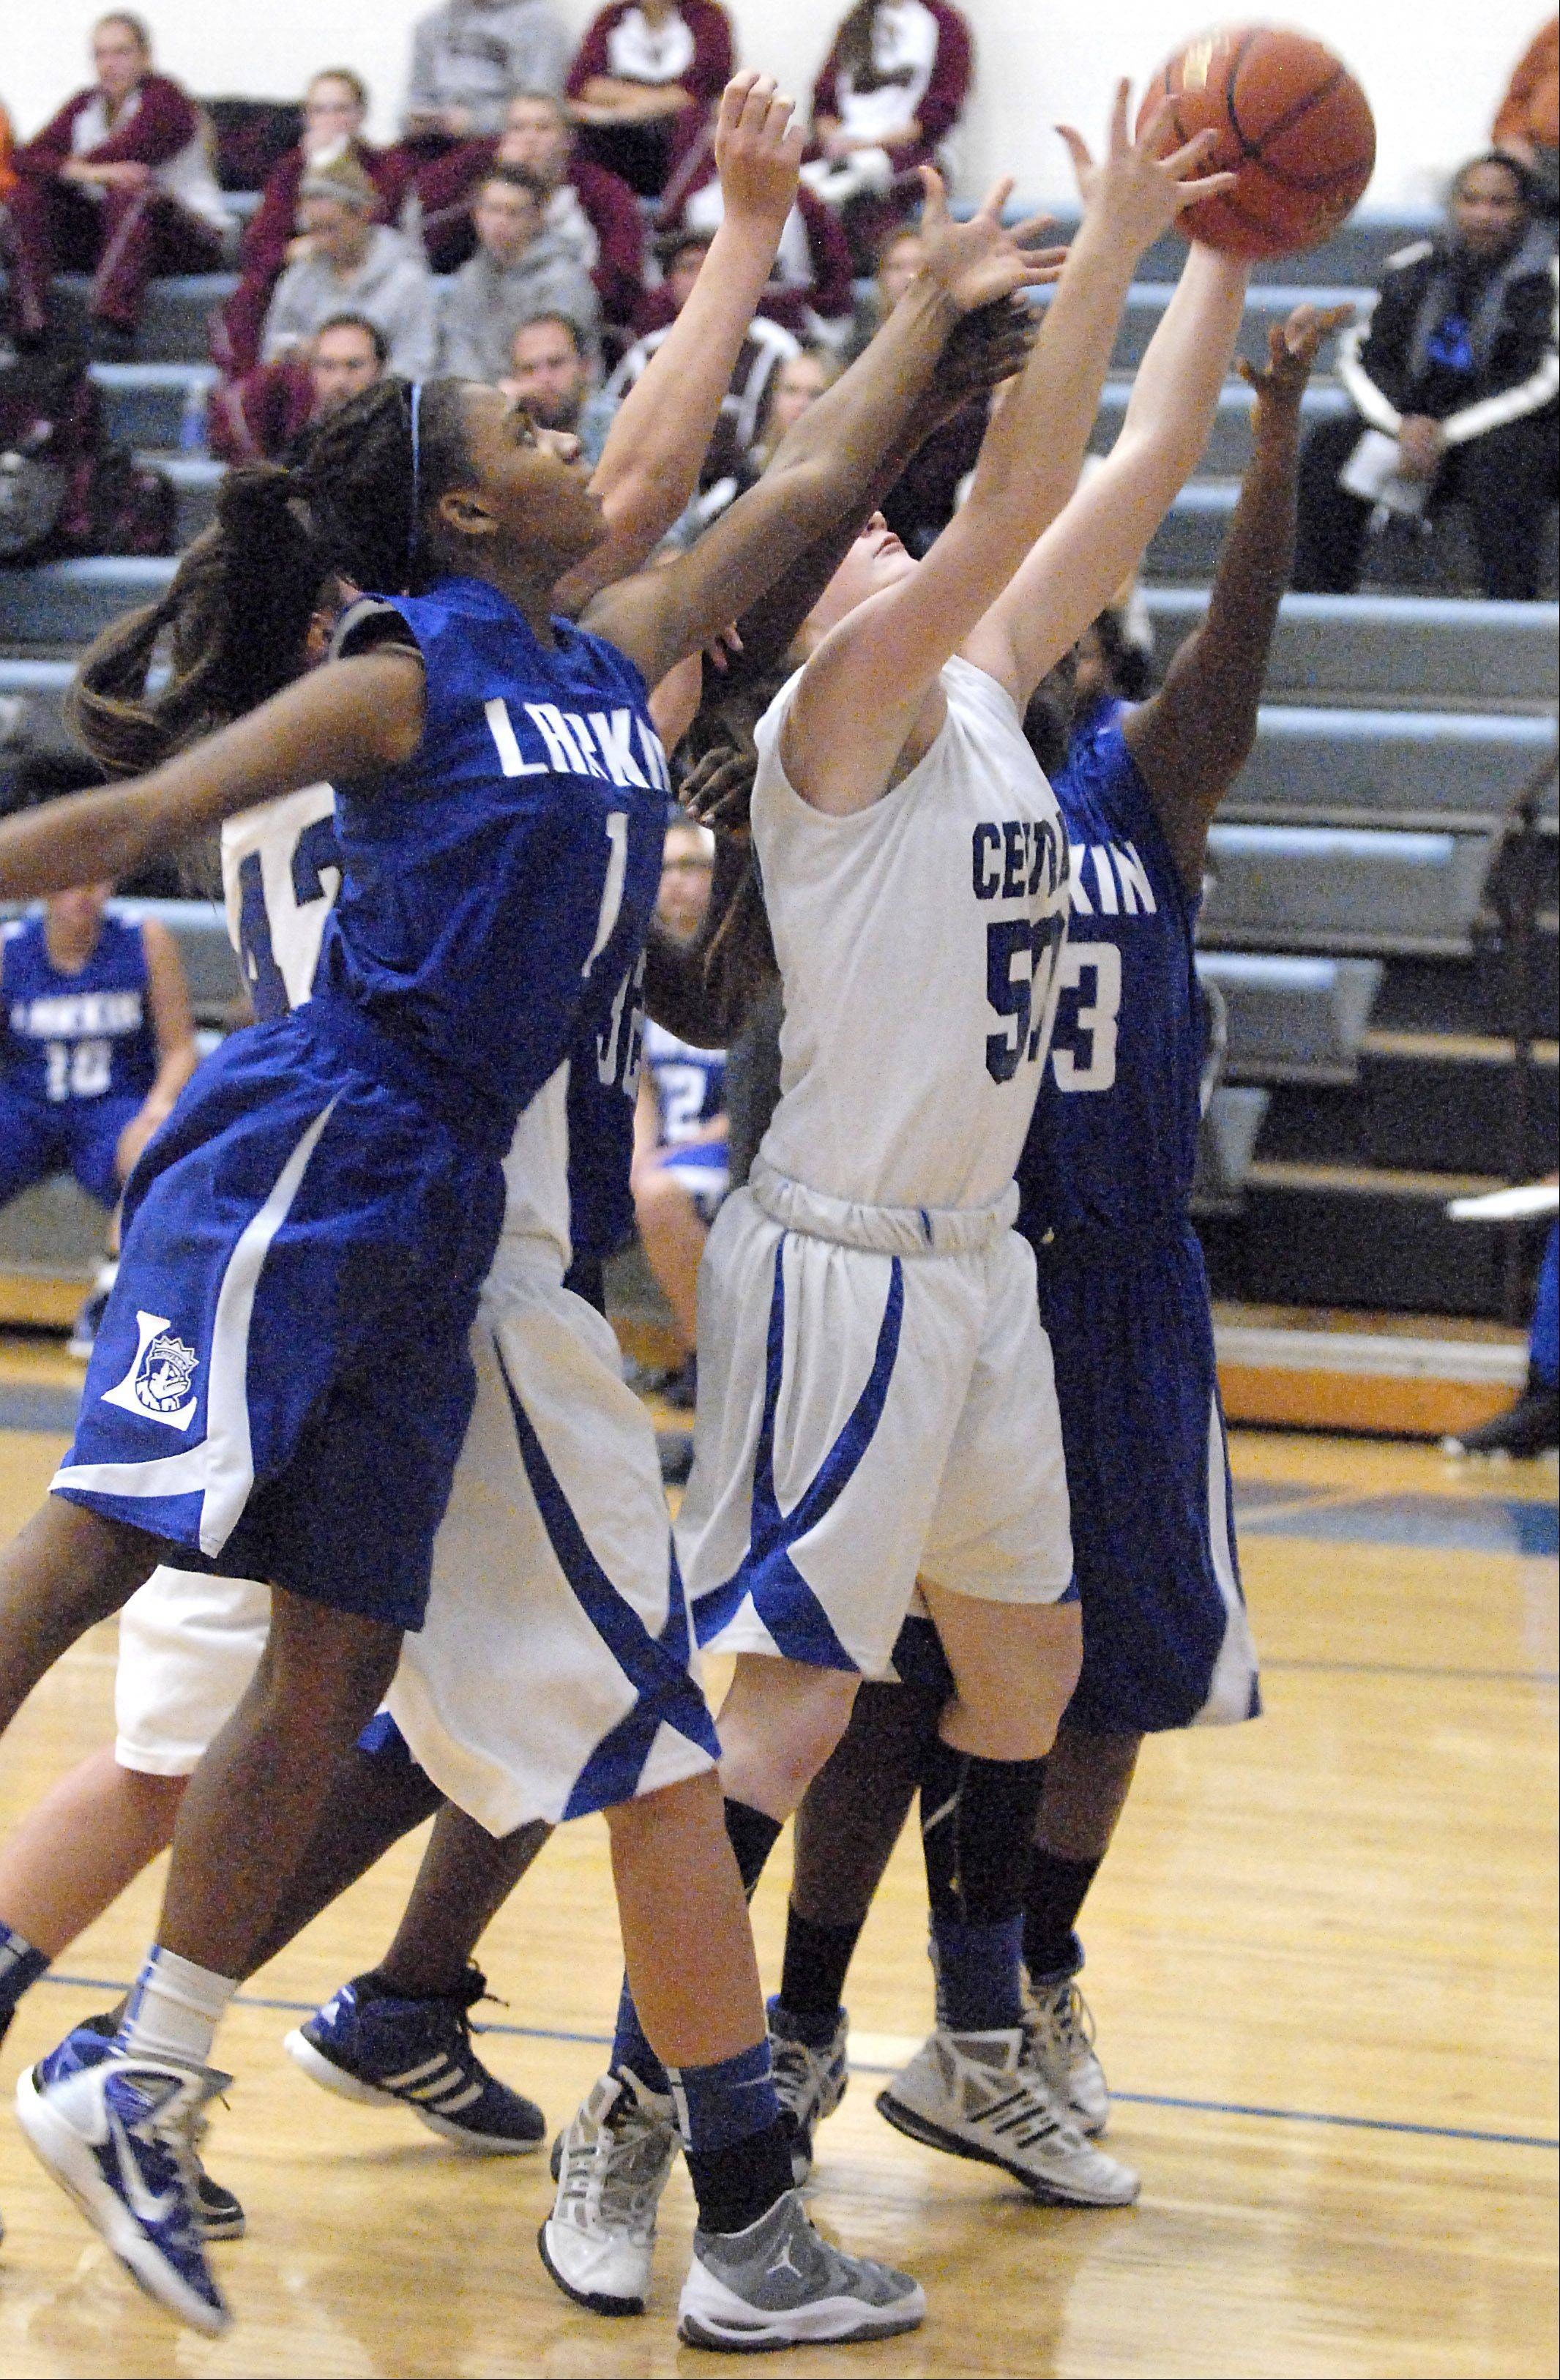 Larkin's Lindsey Taylor and Burlington Central's Rebecca Gerke leap in the pack for a rebound in the first quarter on Friday, November 16.